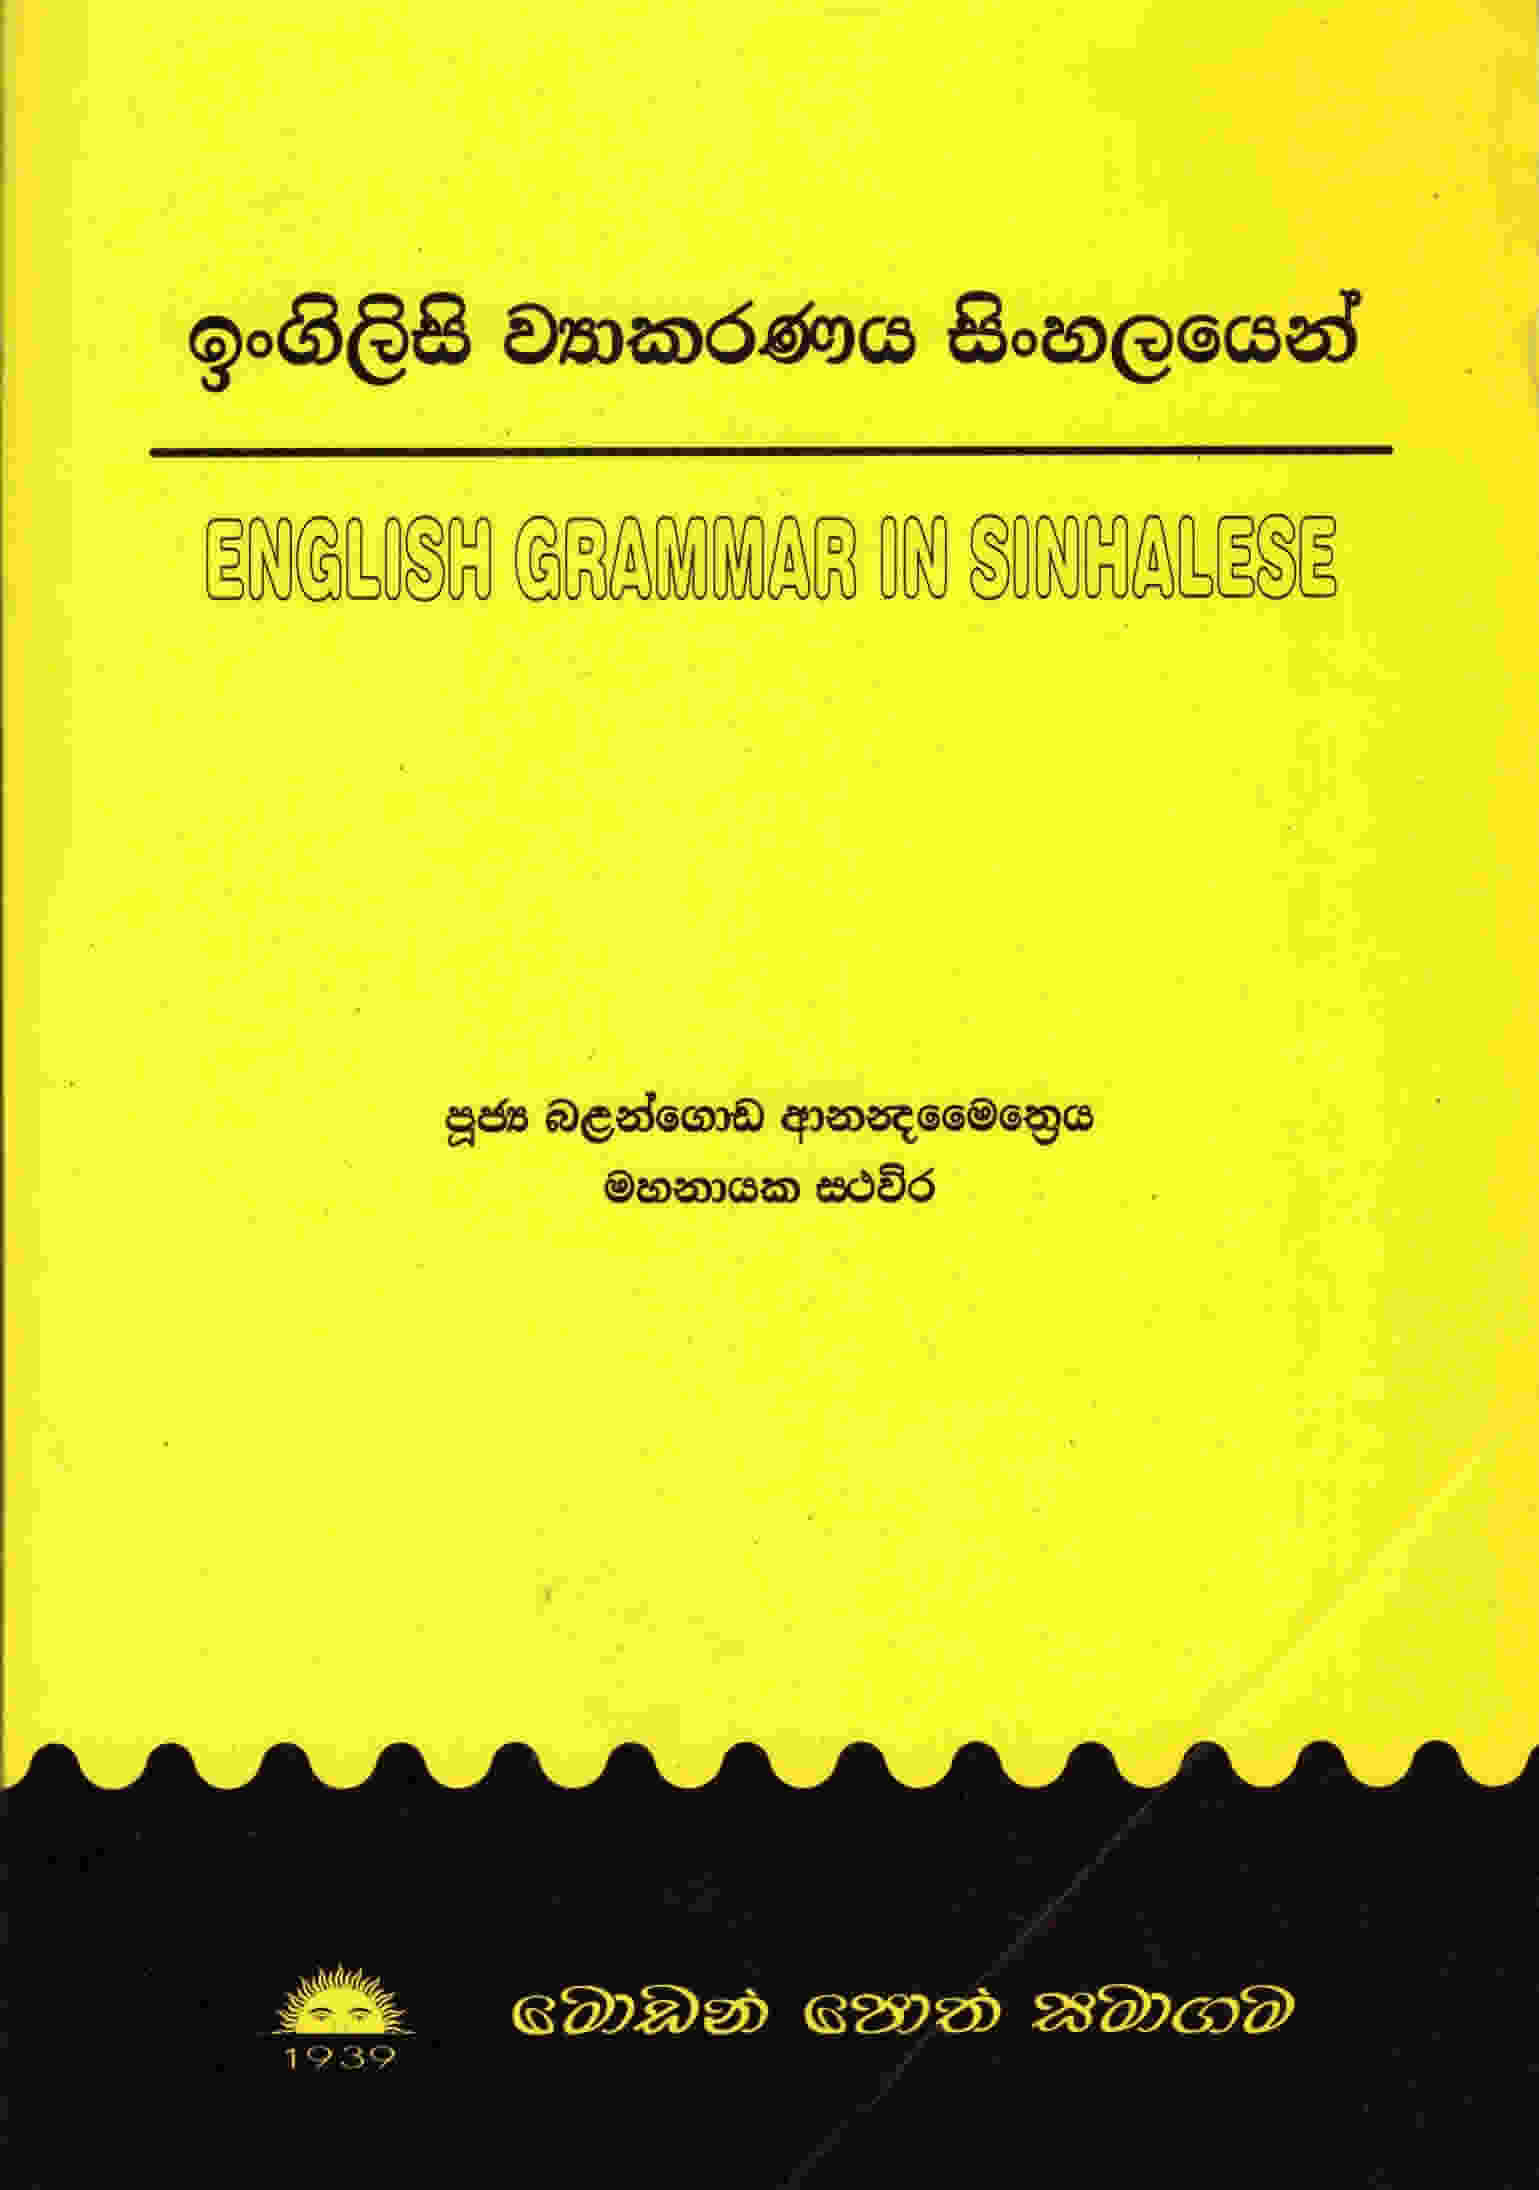 English Grammar in Sinhalese